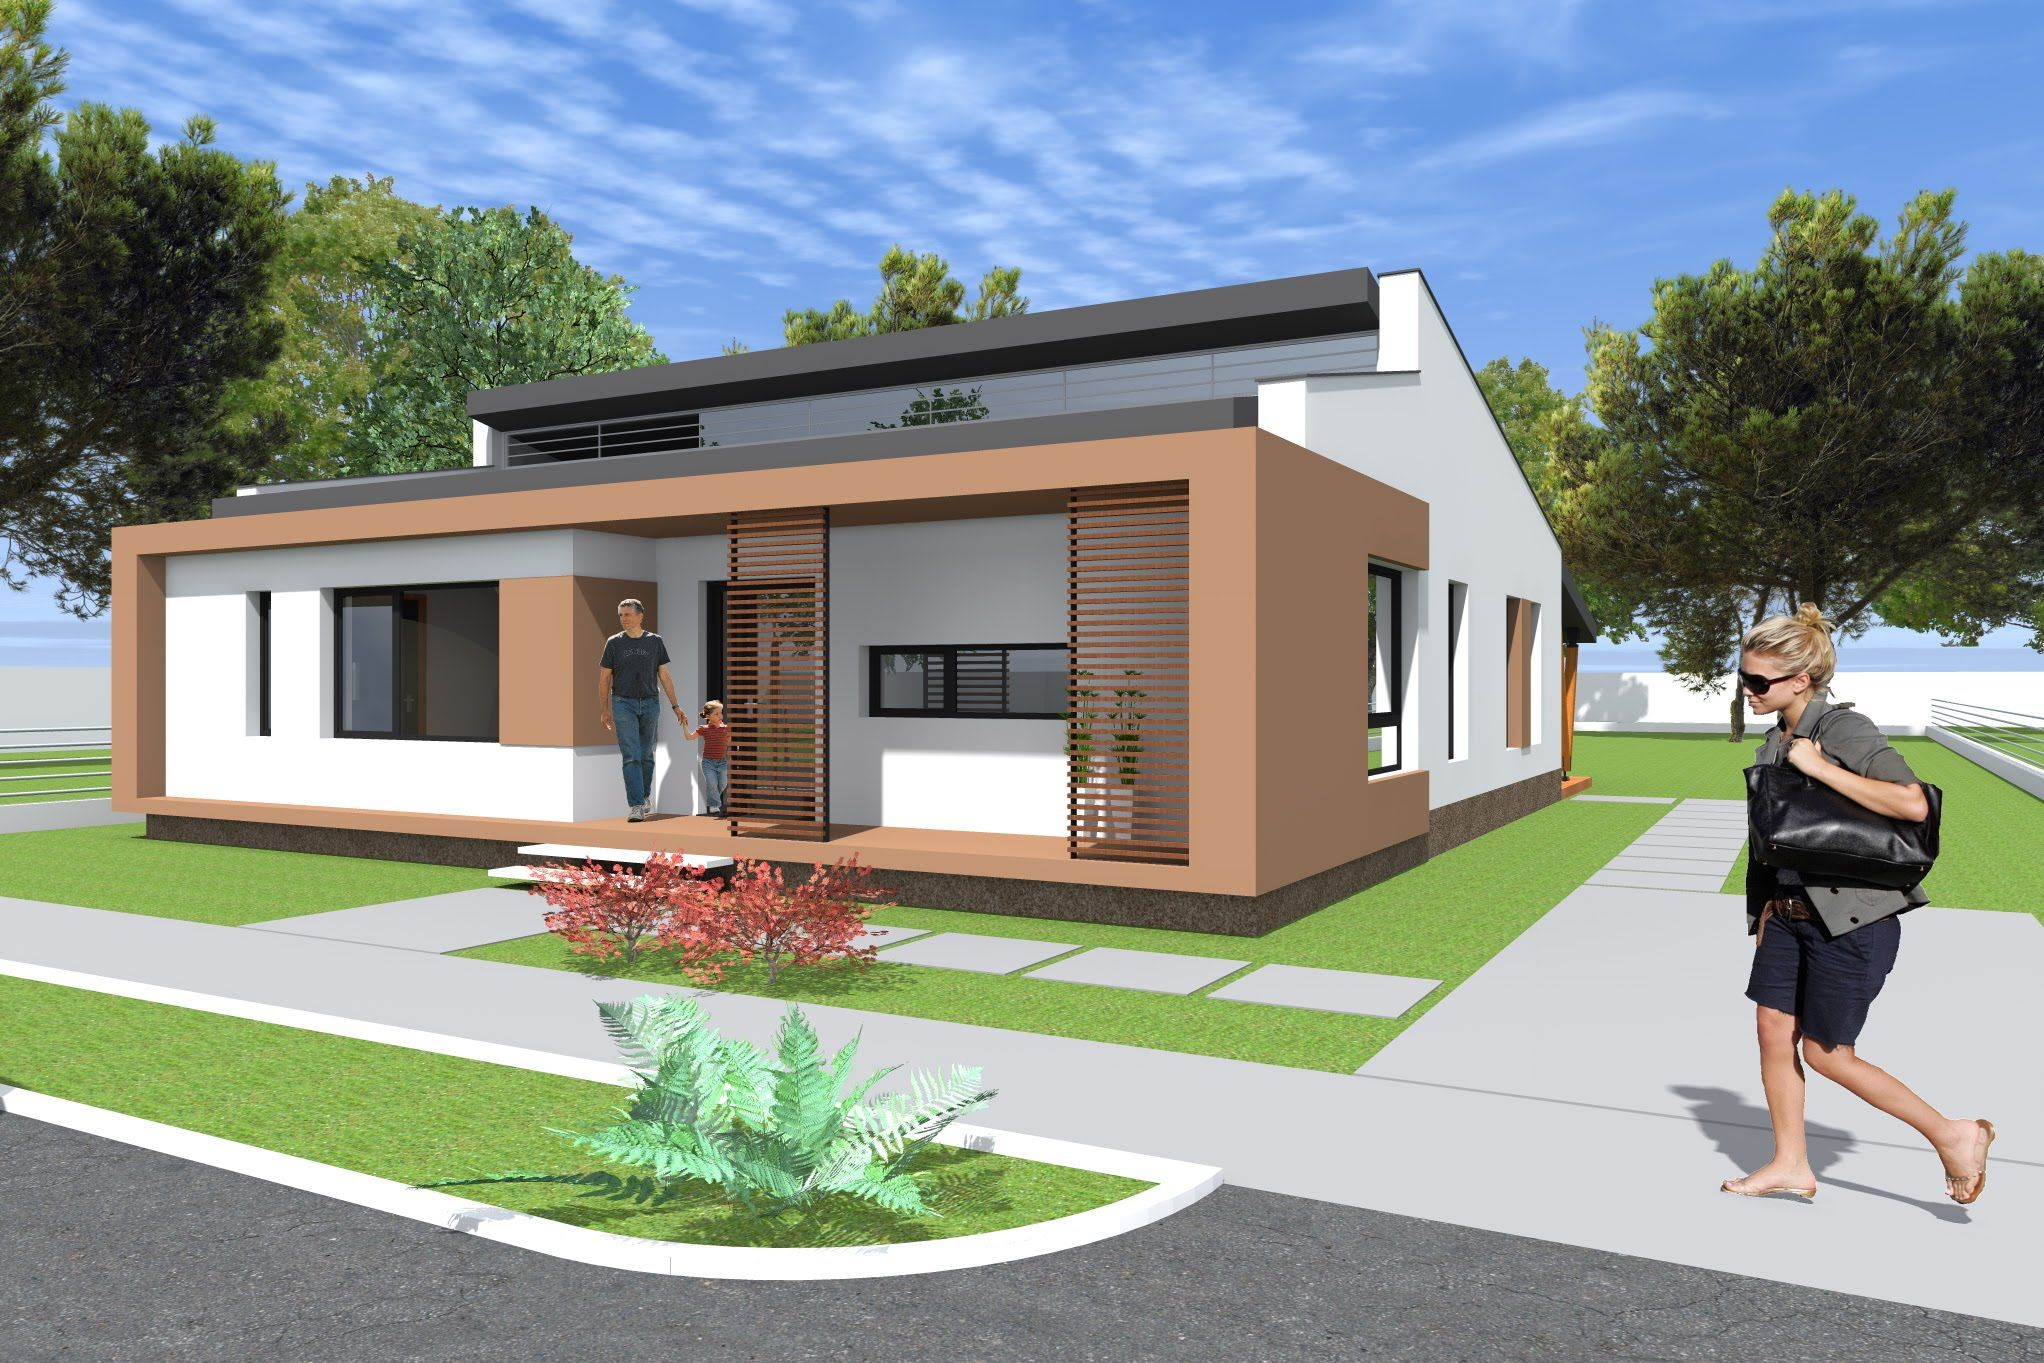 Small modern bungalow house design 133 square meters 1431 sq feet arc youtube videos - Small housessquare meters ...